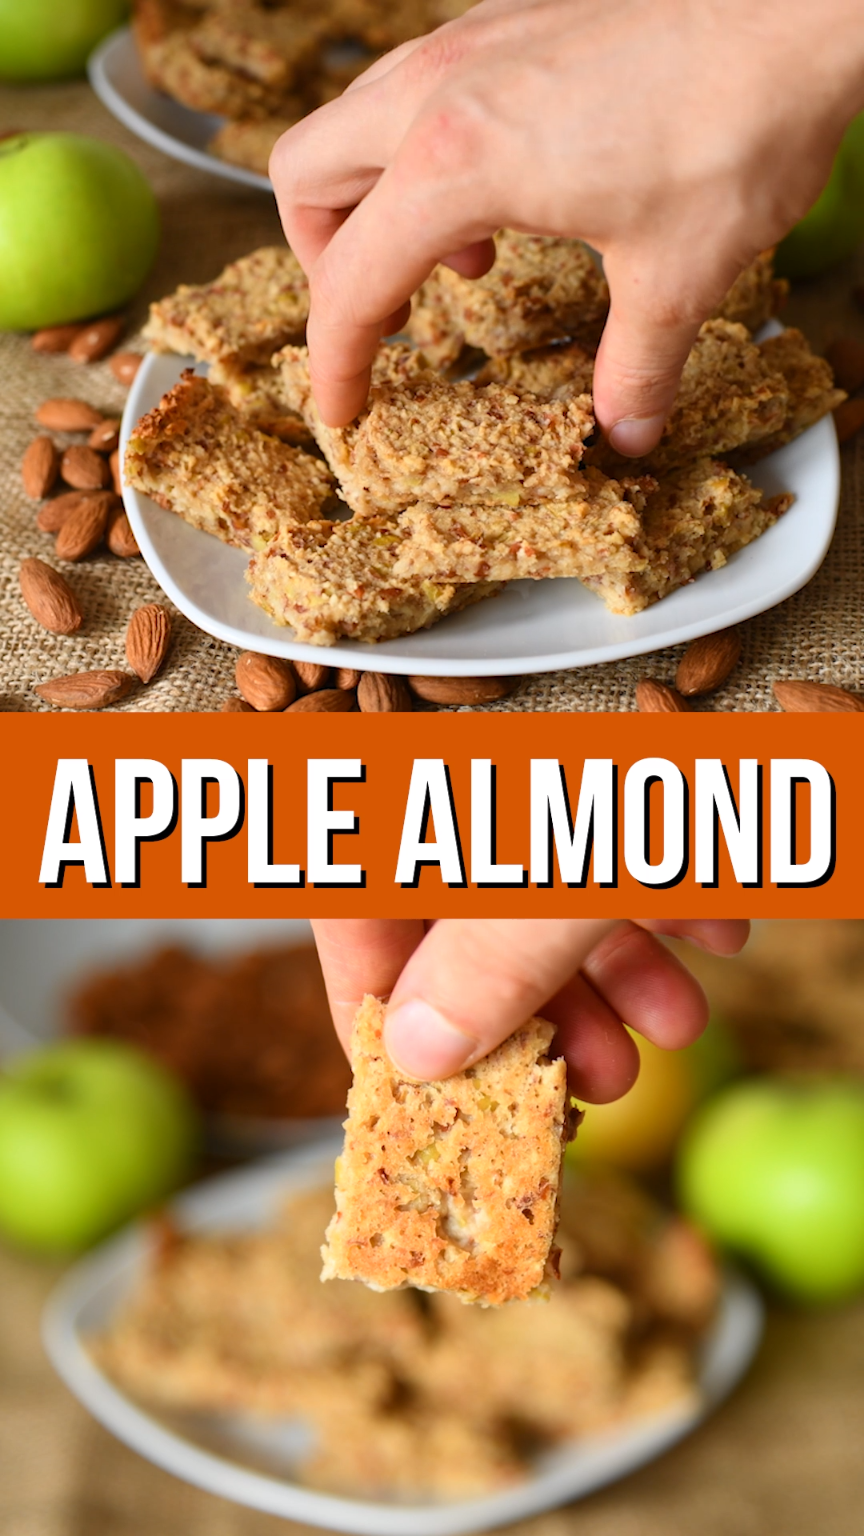 3 ingredient apple almond breakfast bars are easy to make, filling and loaded with goodness. You can use gluten free oats if you're sensitive to gluten.  Full of plant protein and a few is a perfect healthy breakfast on the go #healthyrecipe #breakfast #breakfastbar #healthy #amond #apple #healthybreakfast